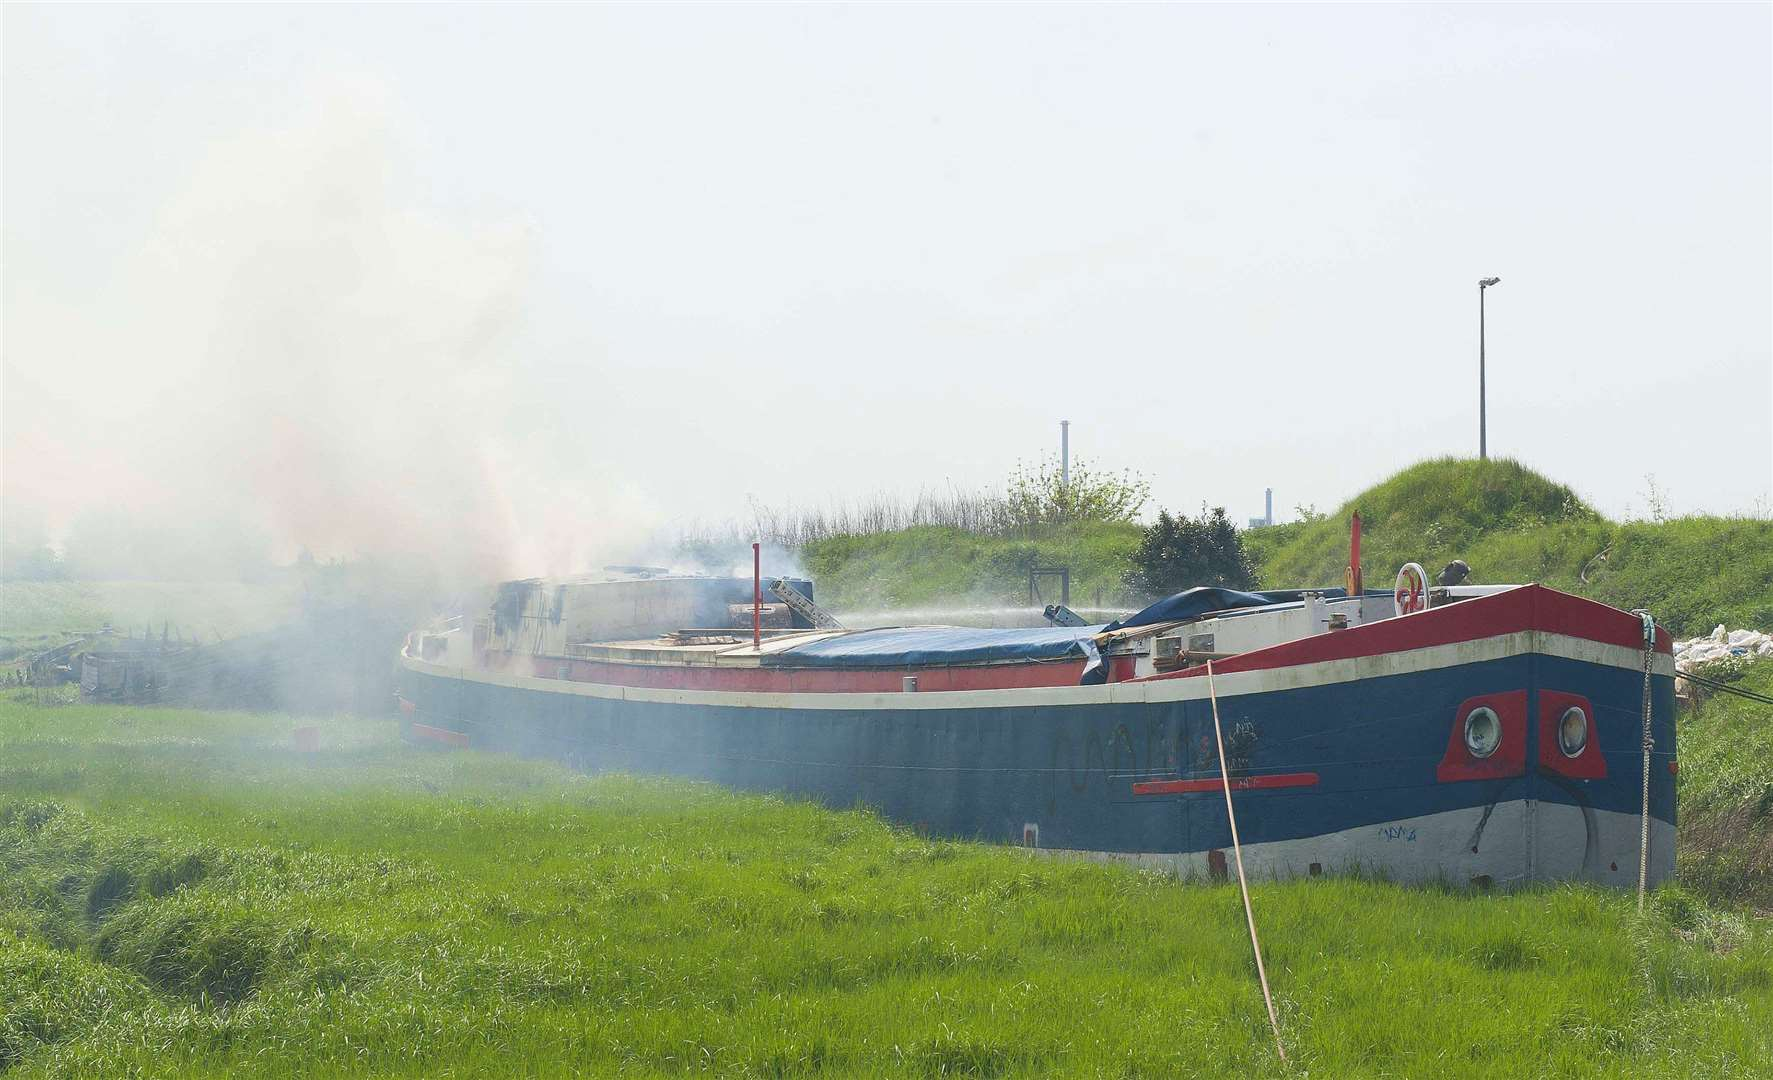 Boat on fire at Boal Quay in King's Lynn. (1887082)